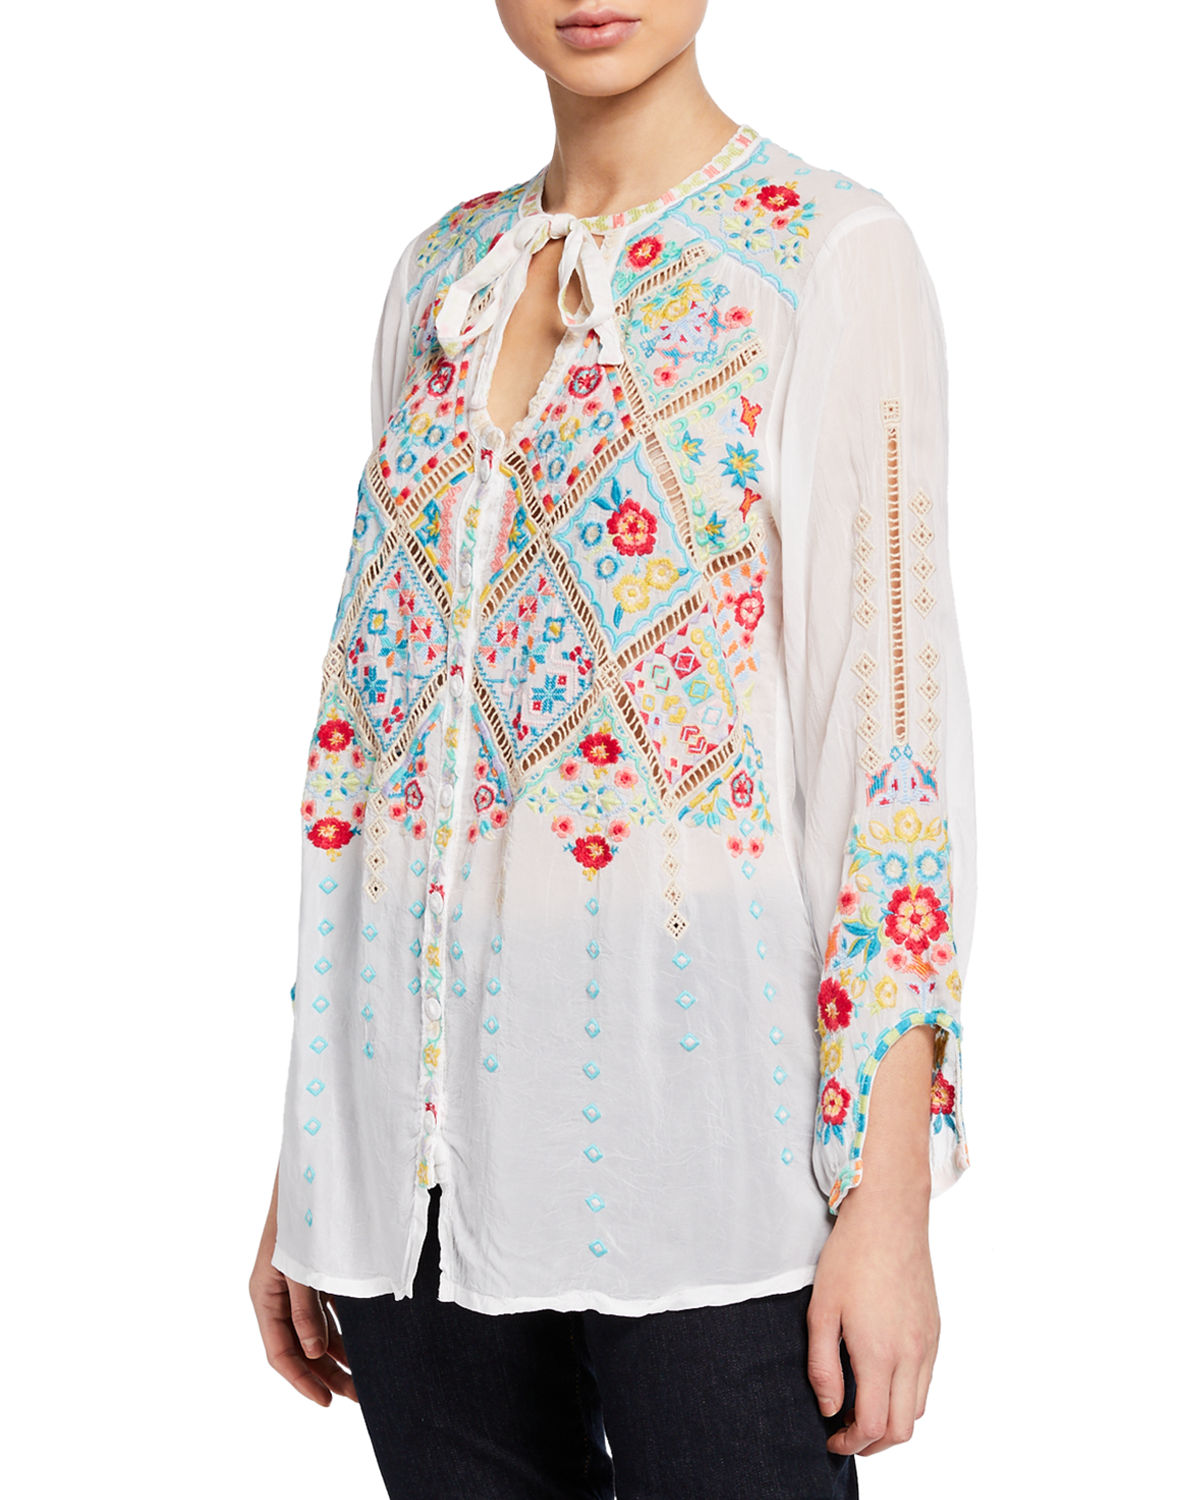 Johnny Was Tops ARGES EMBROIDERED GEORGETTE BLOUSE